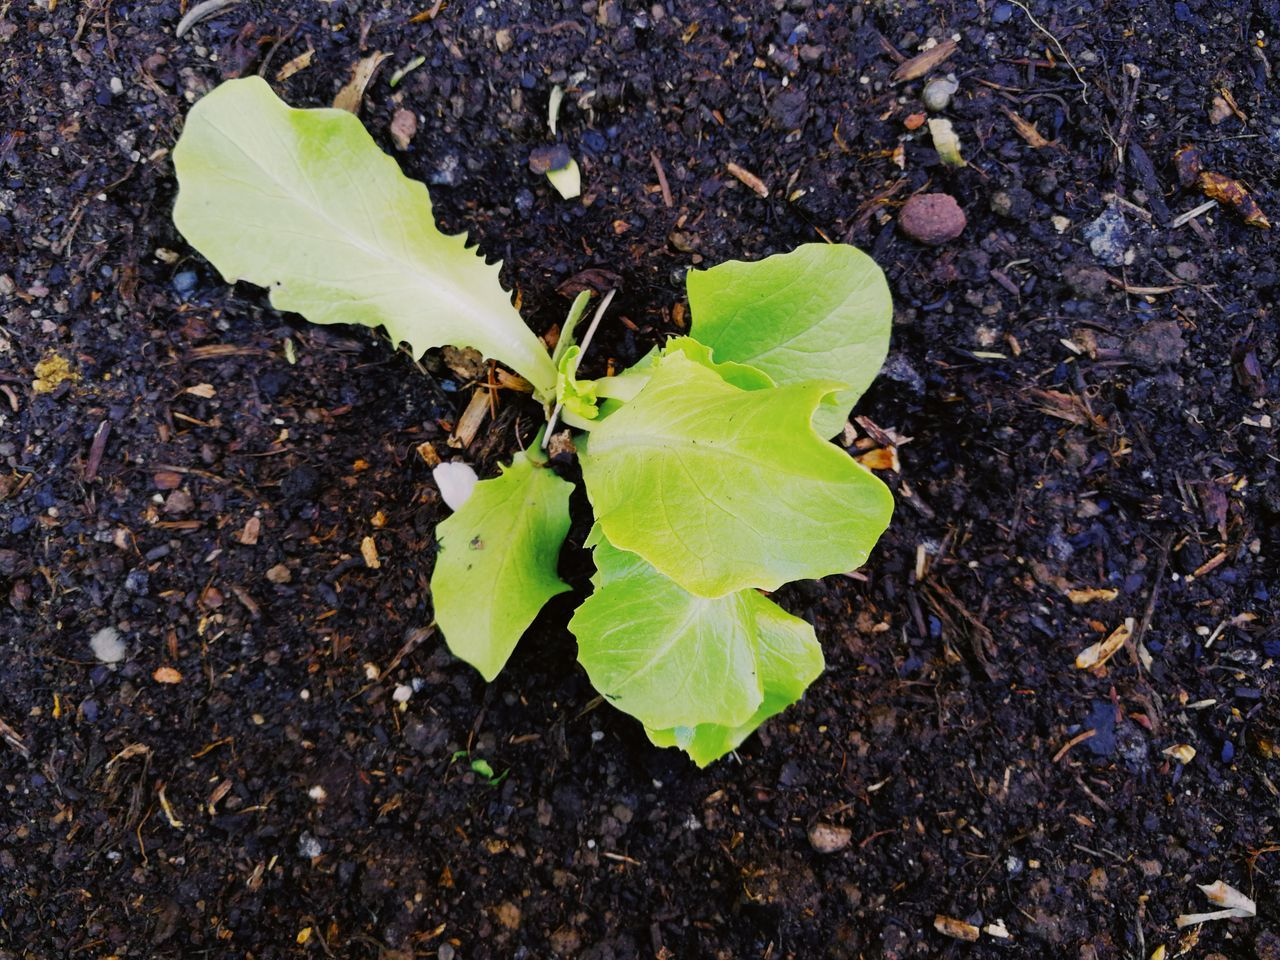 leaf, green color, close-up, high angle view, day, nature, outdoors, growth, no people, freshness, fragility, beauty in nature